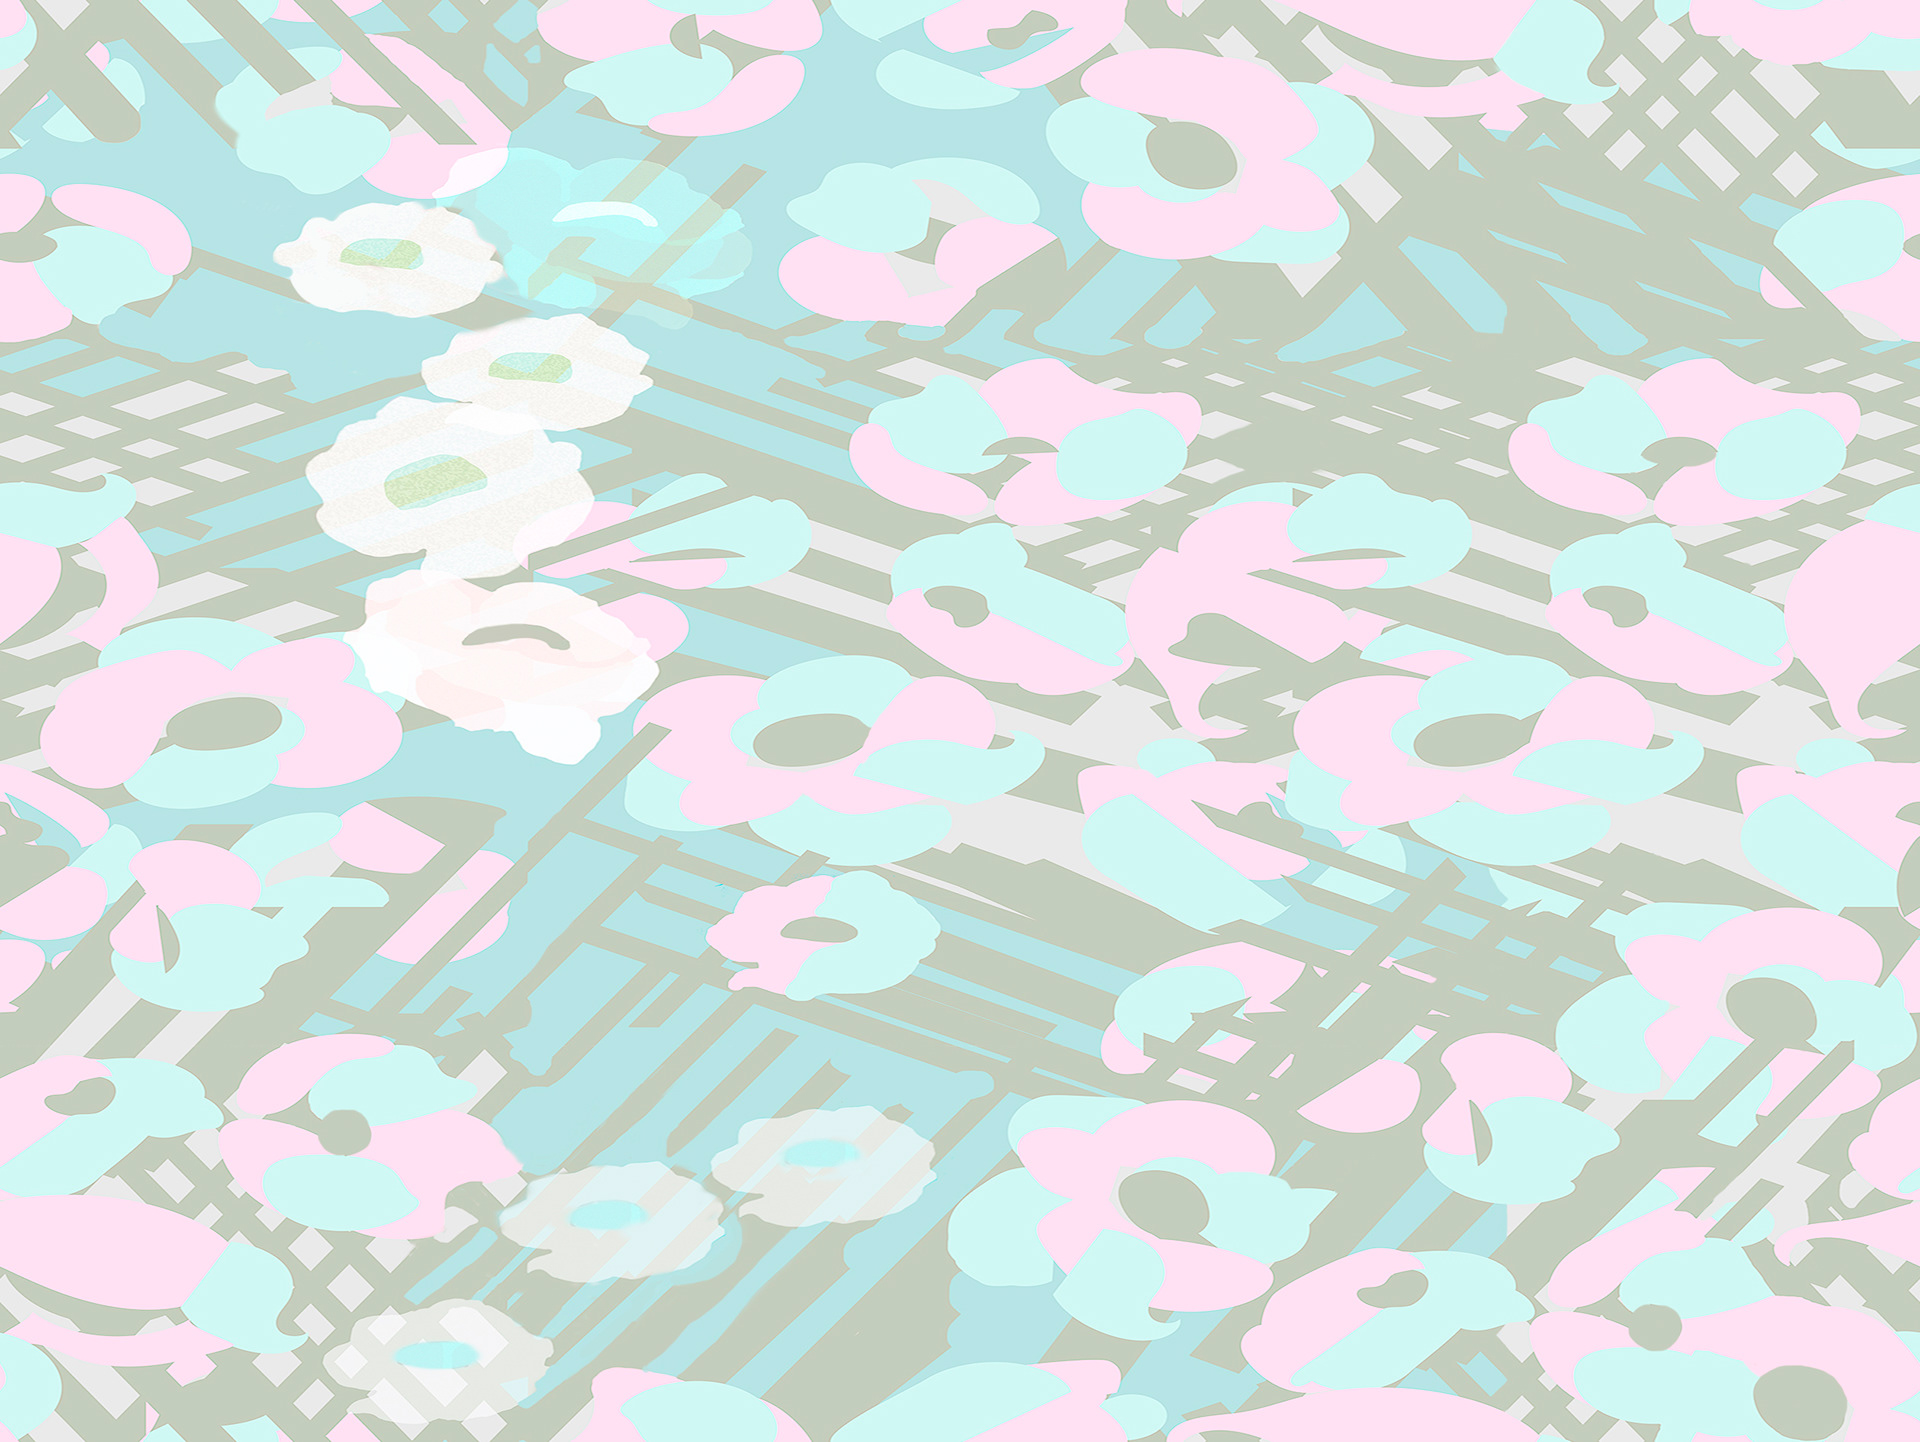 Lydie Vacher Flowers Seamless Pattern For Textile Wrapping Paper